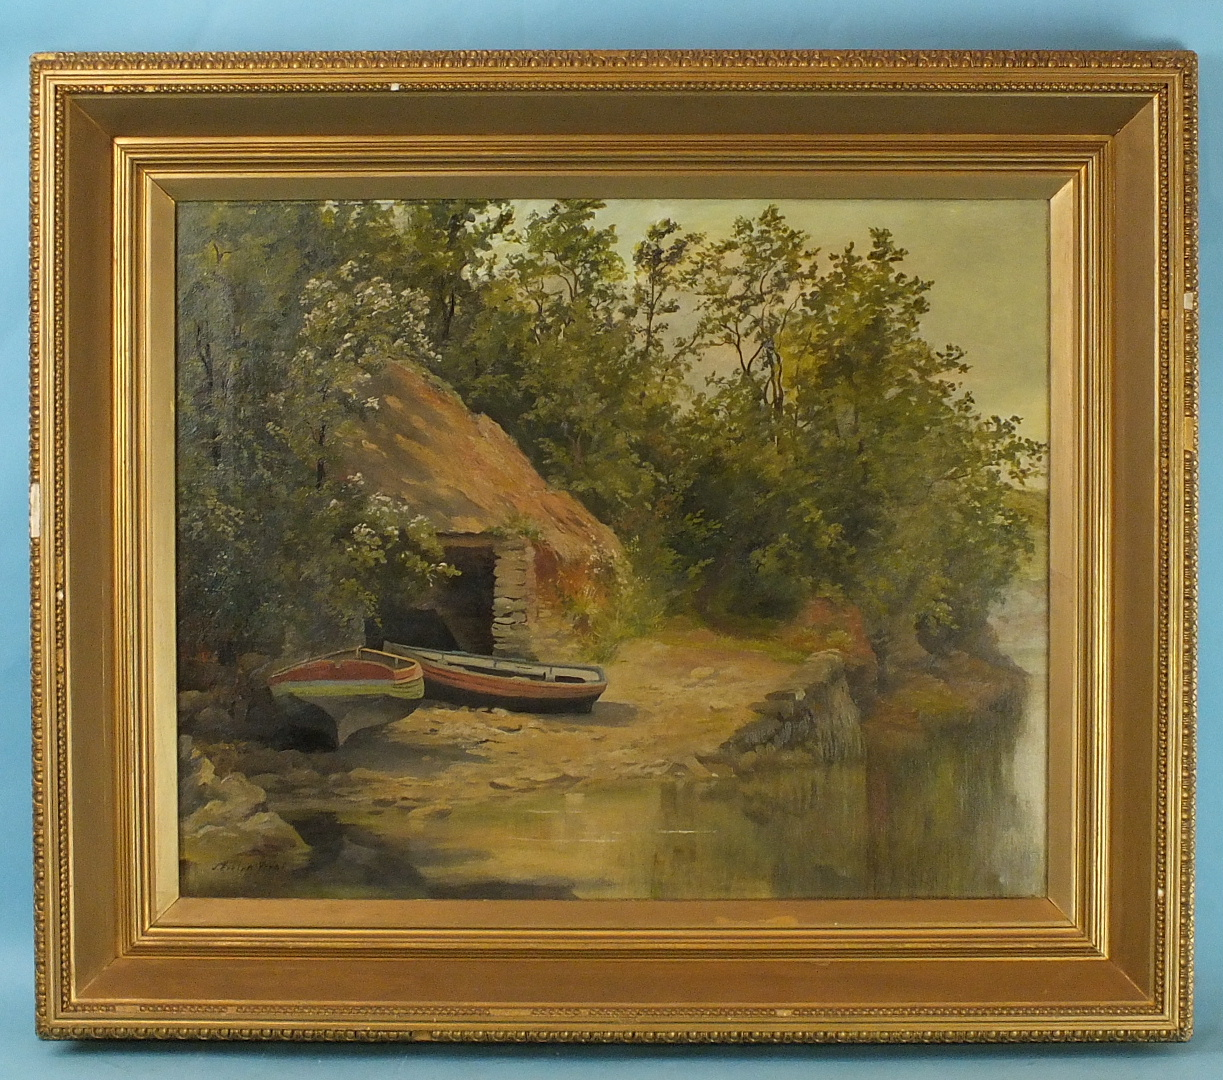 Lot 14 - J Evelyn-West BOATS ON A LAKE SHORE Signed oil on canvas, 41.5 x 51.5cm.